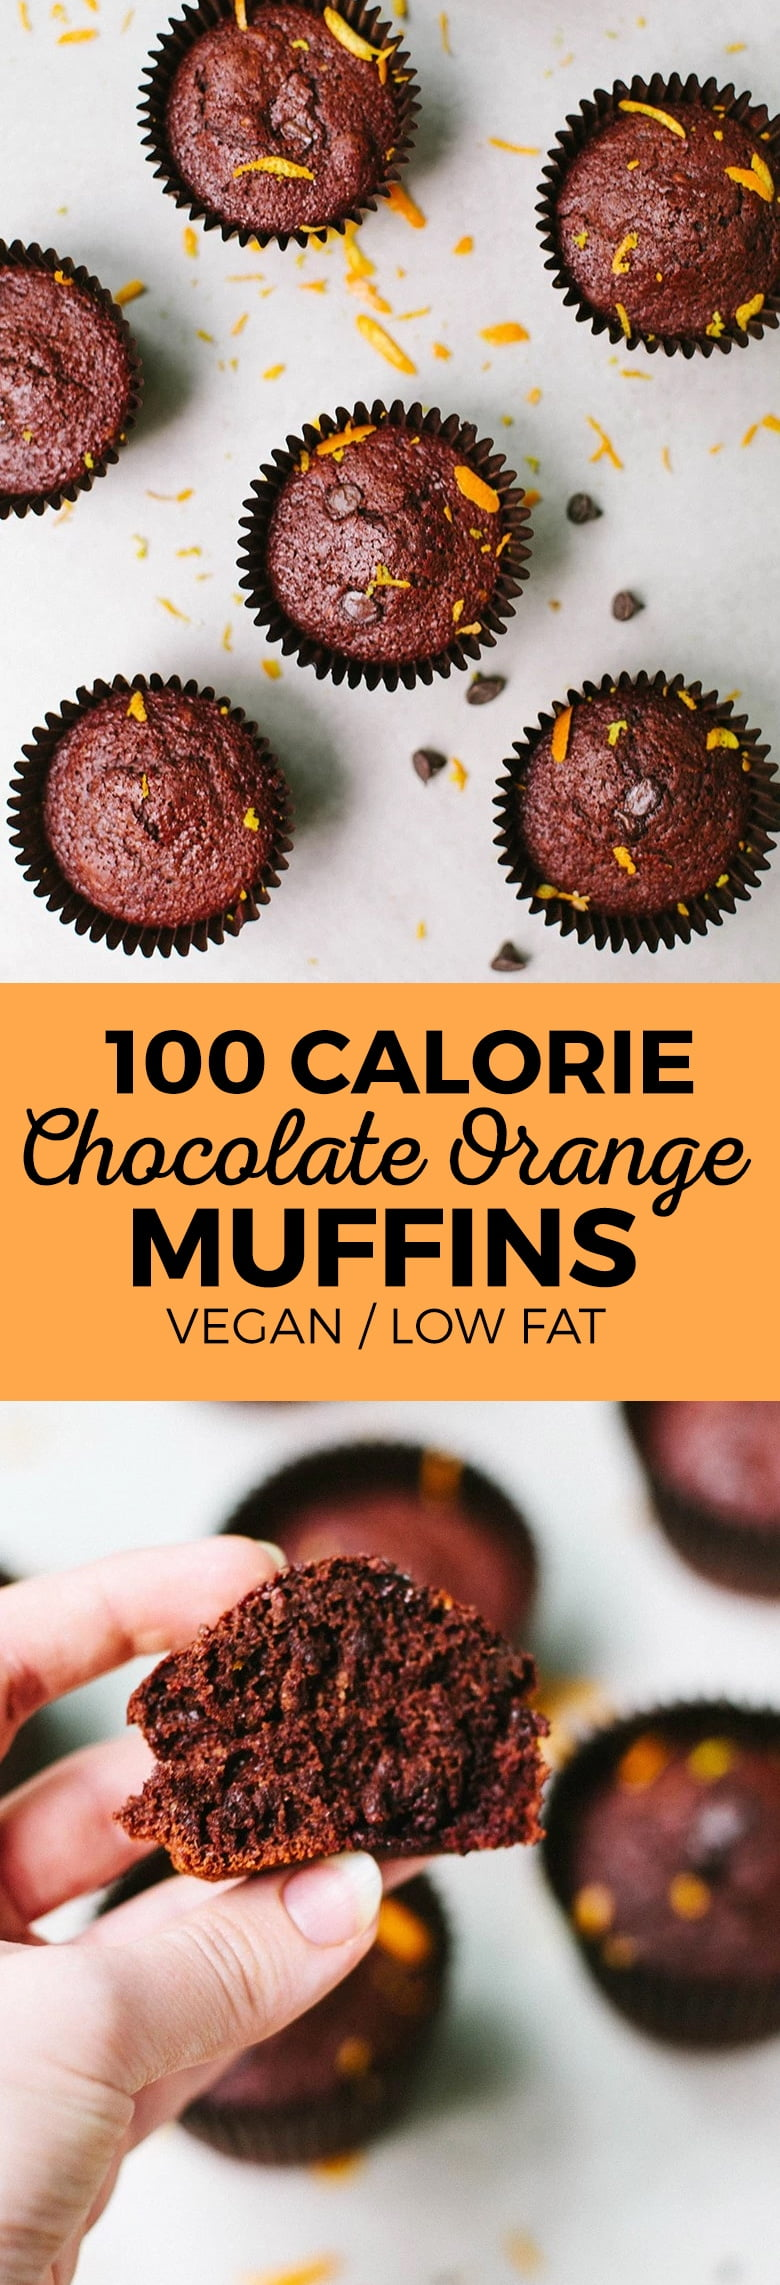 100 Calorie Chocolate Orange Muffins (Vegan)